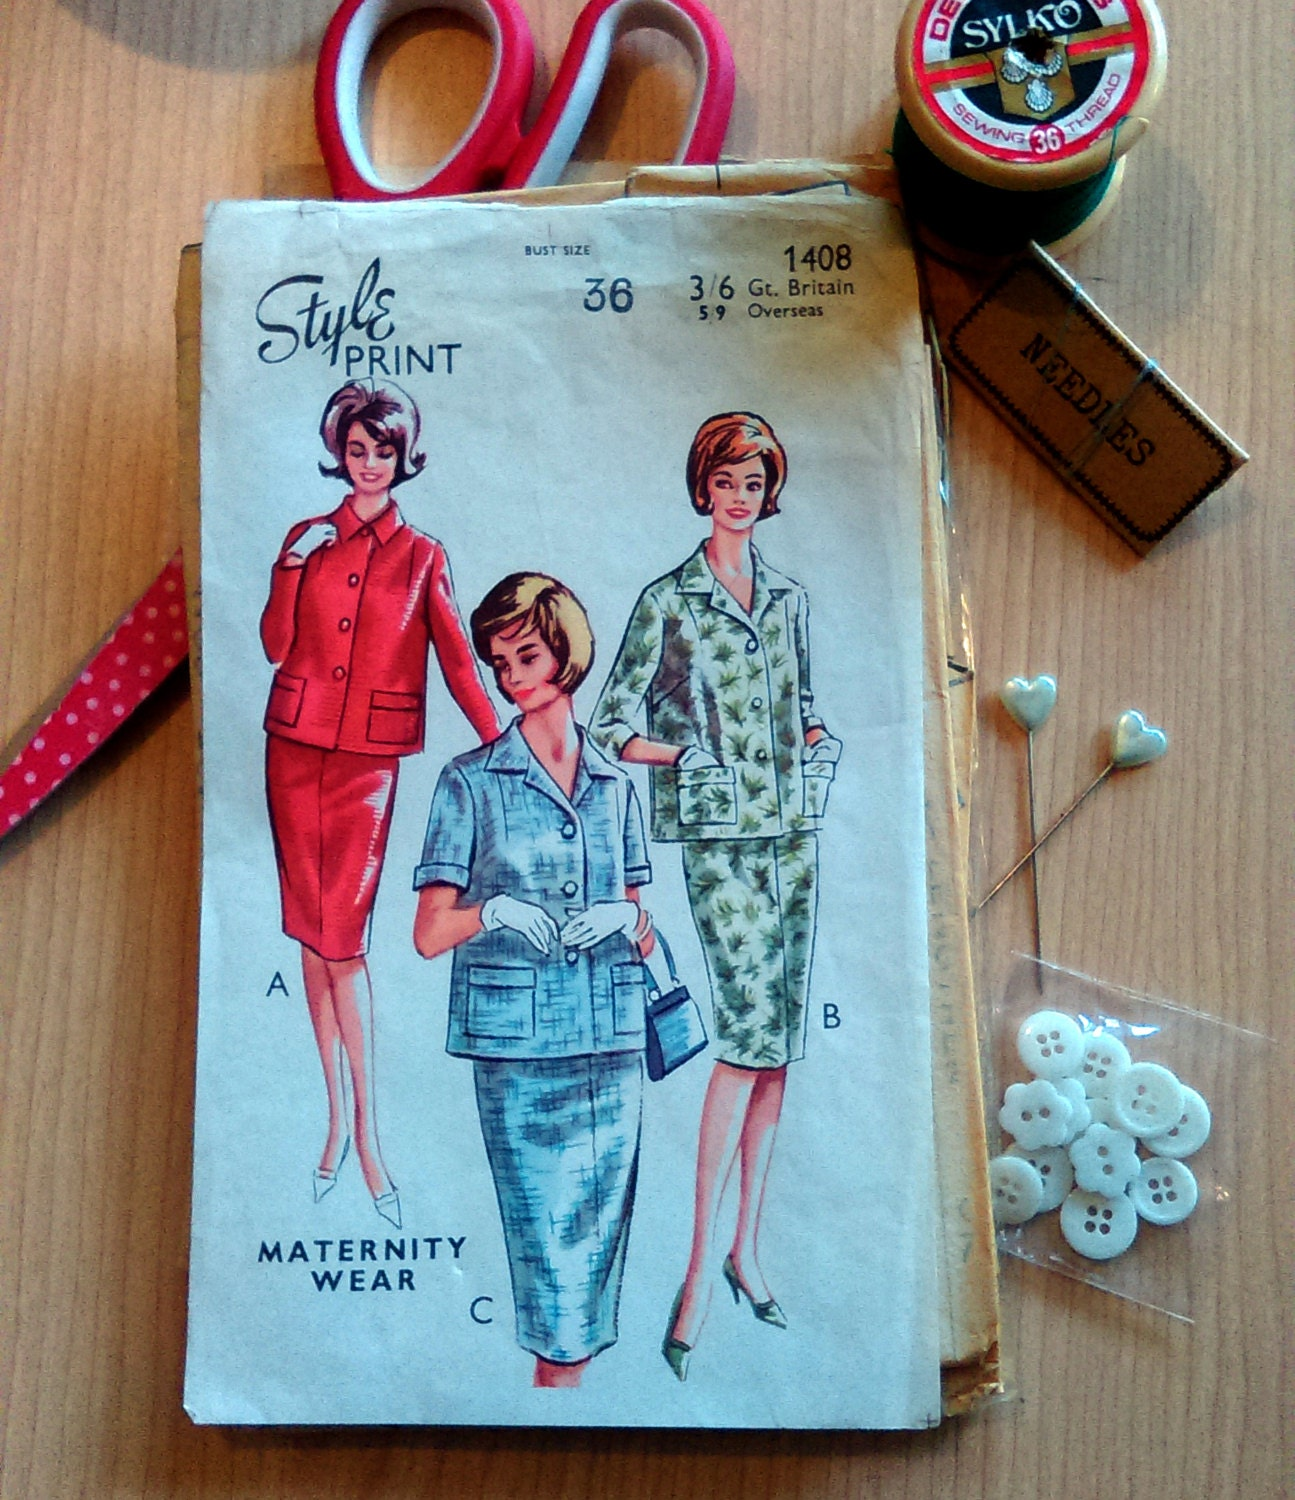 Vintage maternity sewing pattern style dress pattern 1408 60s vintage maternity sewing pattern style dress pattern 1408 60s dress vintage sewing pattern shift dress suit pattern for women sewing ombrellifo Choice Image